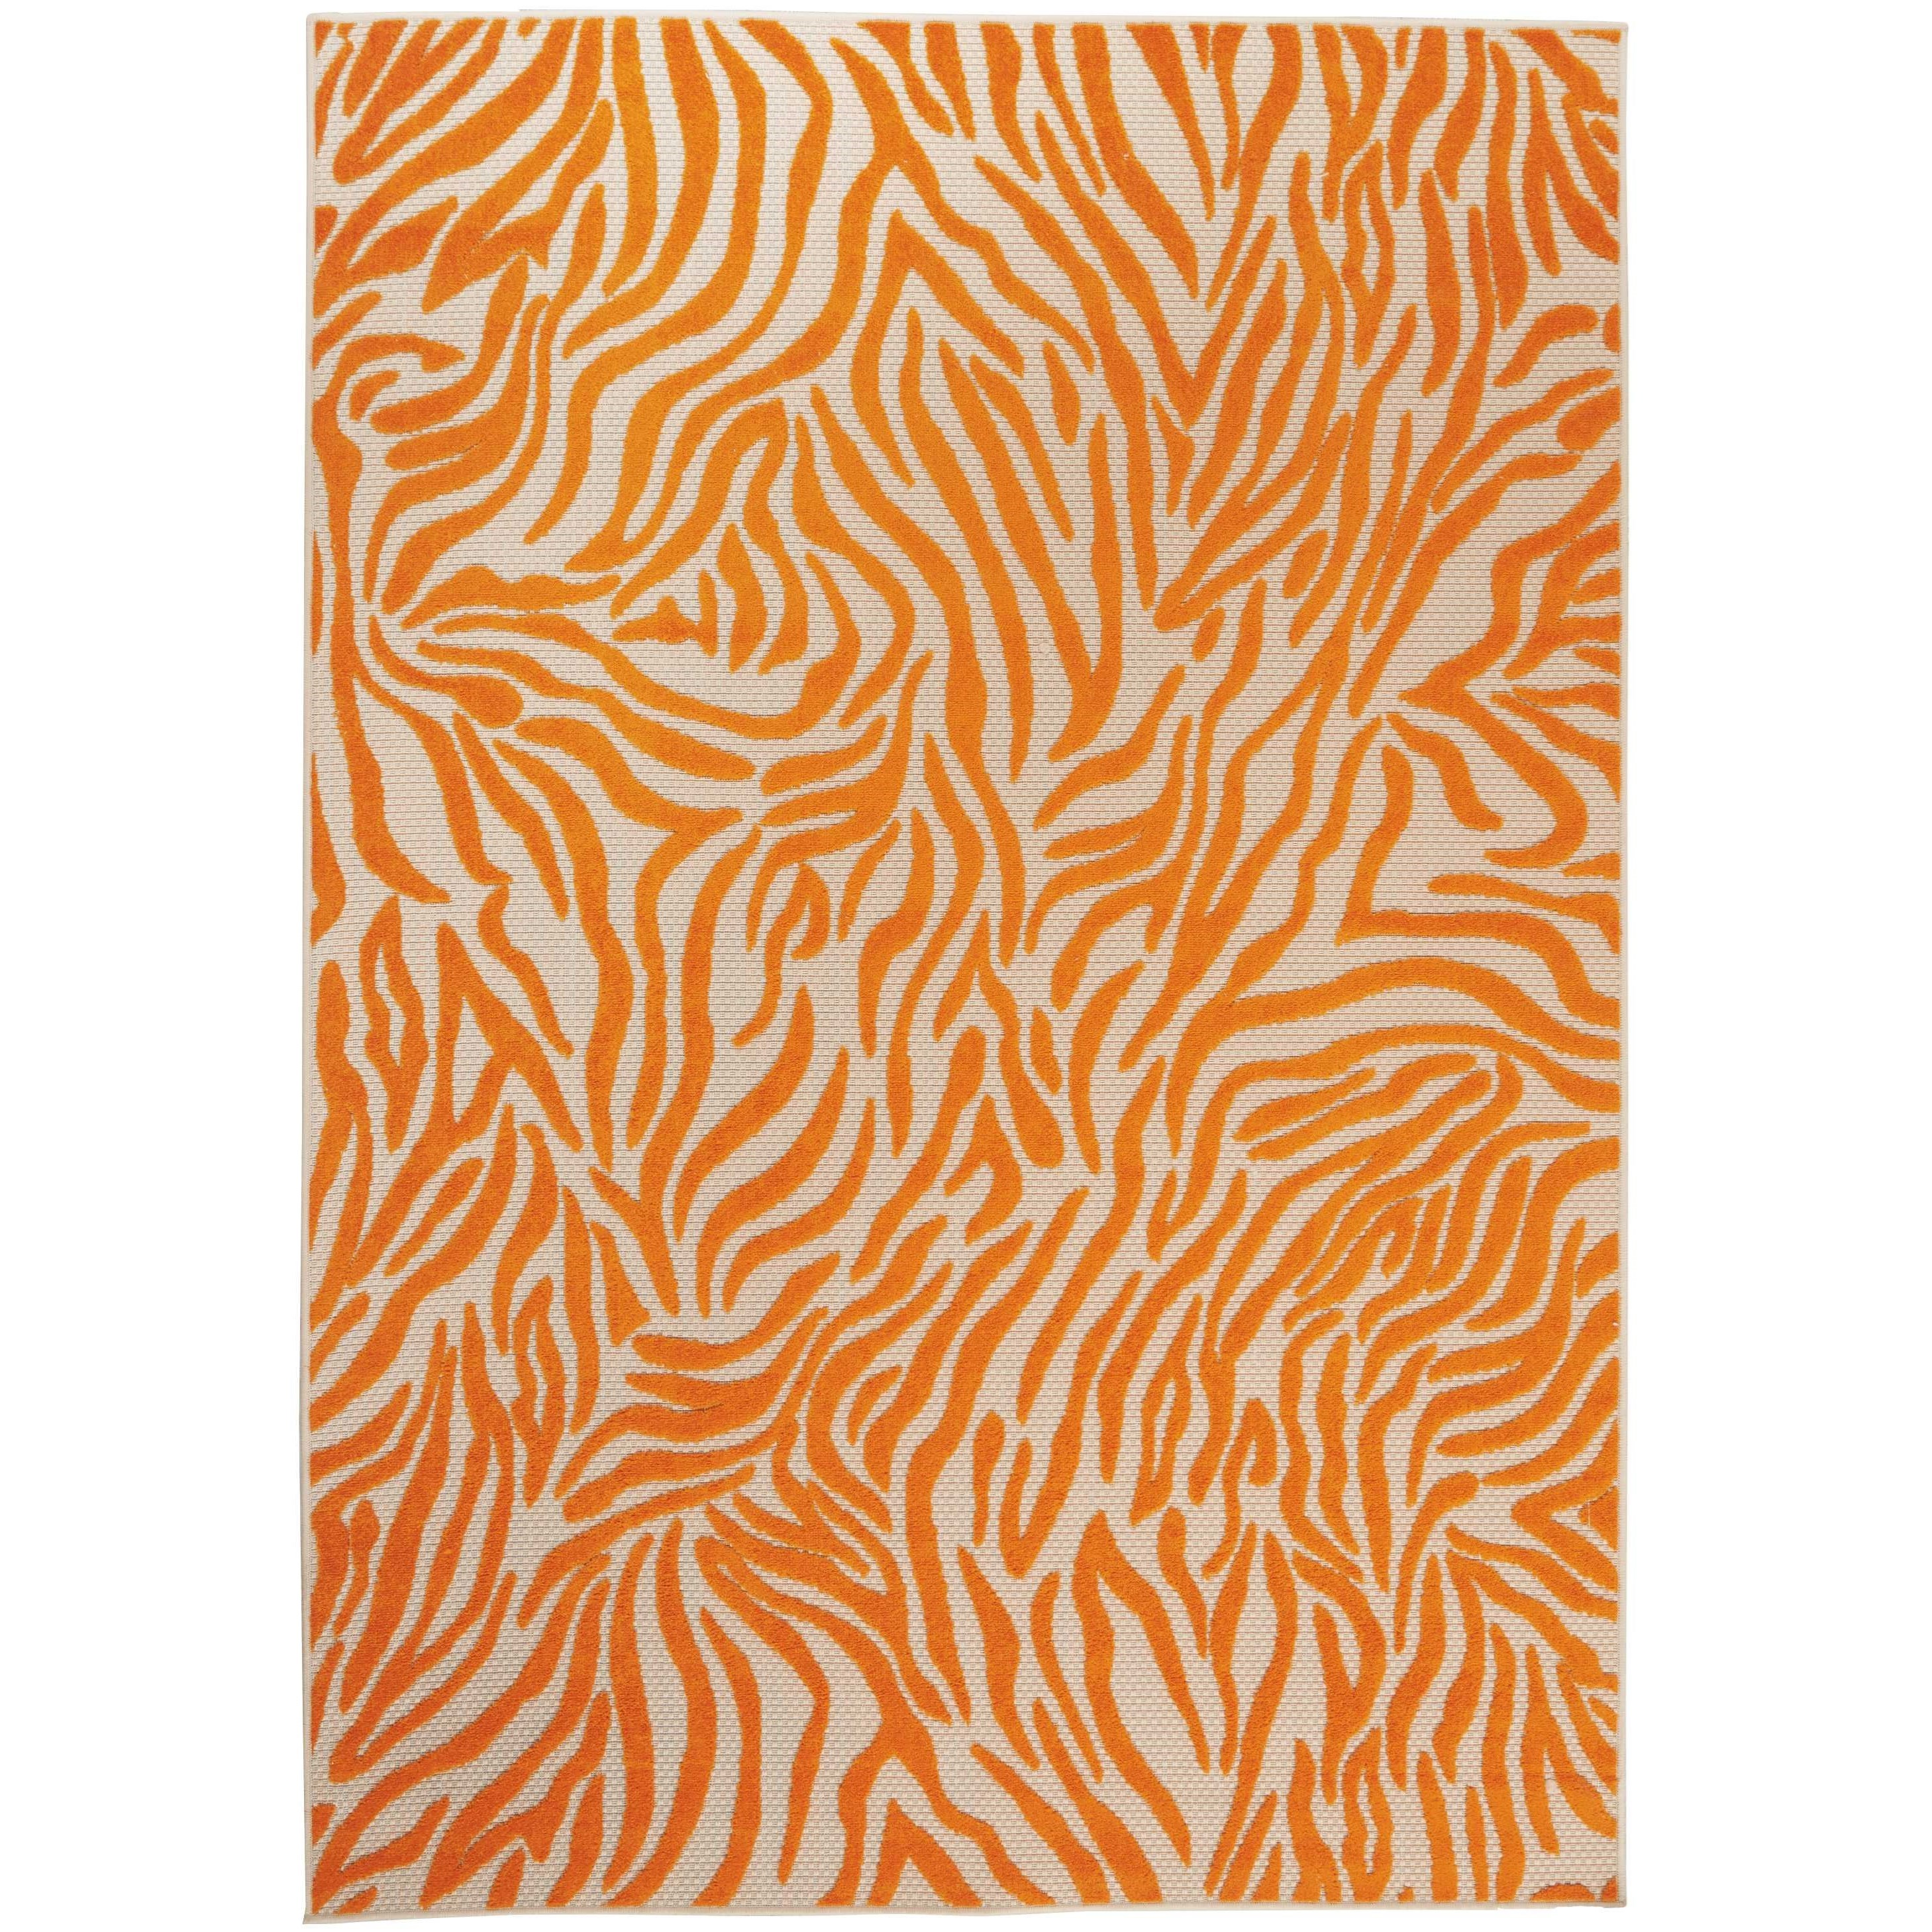 "Aloha 3'6"" x 5'6"" Orange Rectangle Rug by Nourison at Home Collections Furniture"